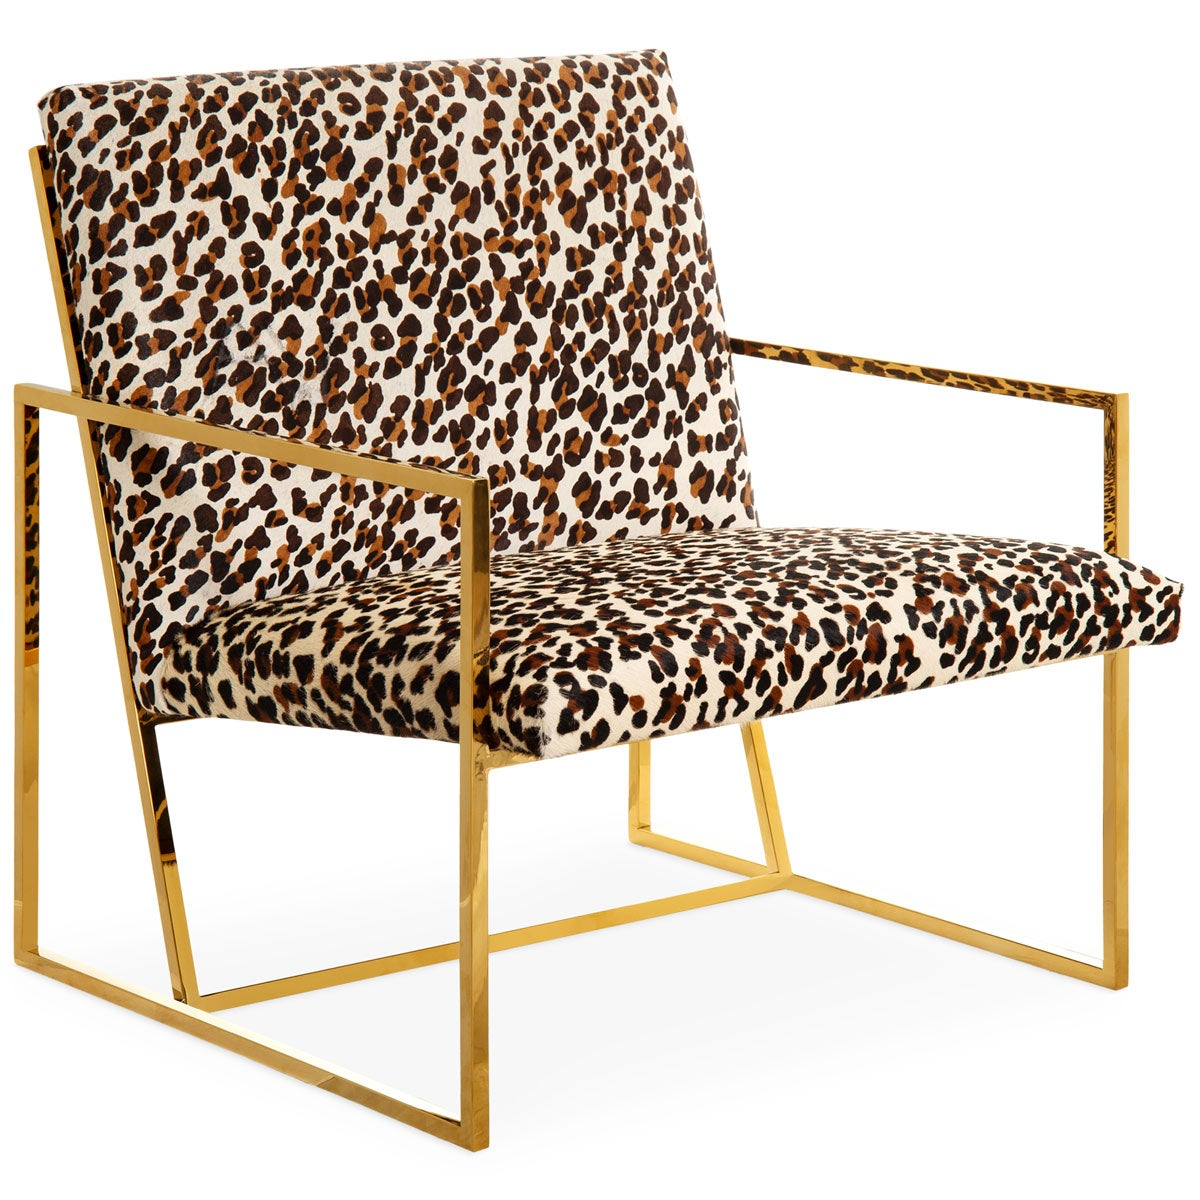 Santorini Chair in Cowhide - ModShop1.com